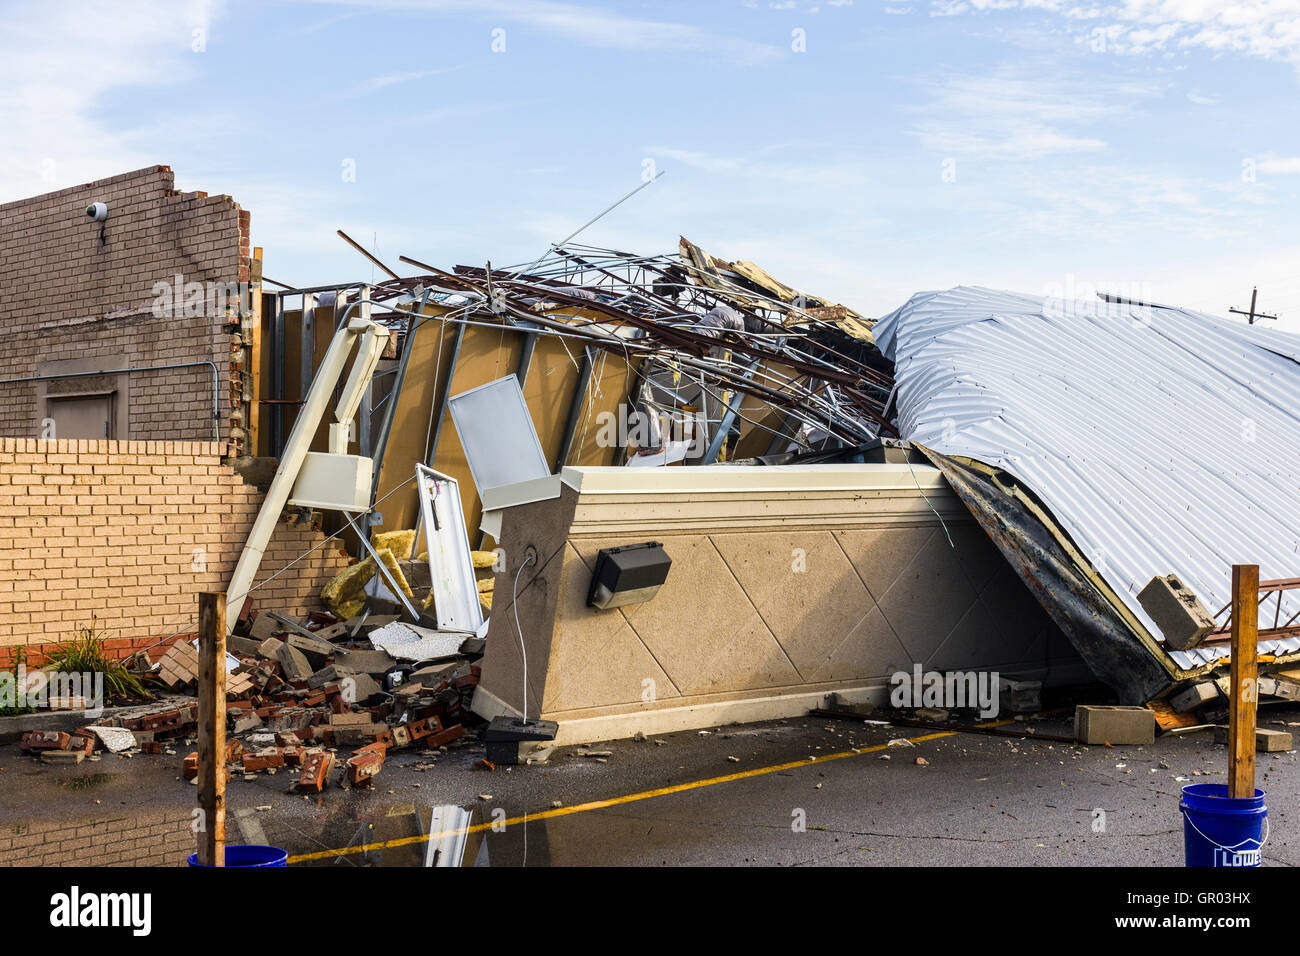 Kokomo - August 24, 2016: Several EF3 tornadoes touched down, one of which destroyed a local Starbucks 7 - Stock Image